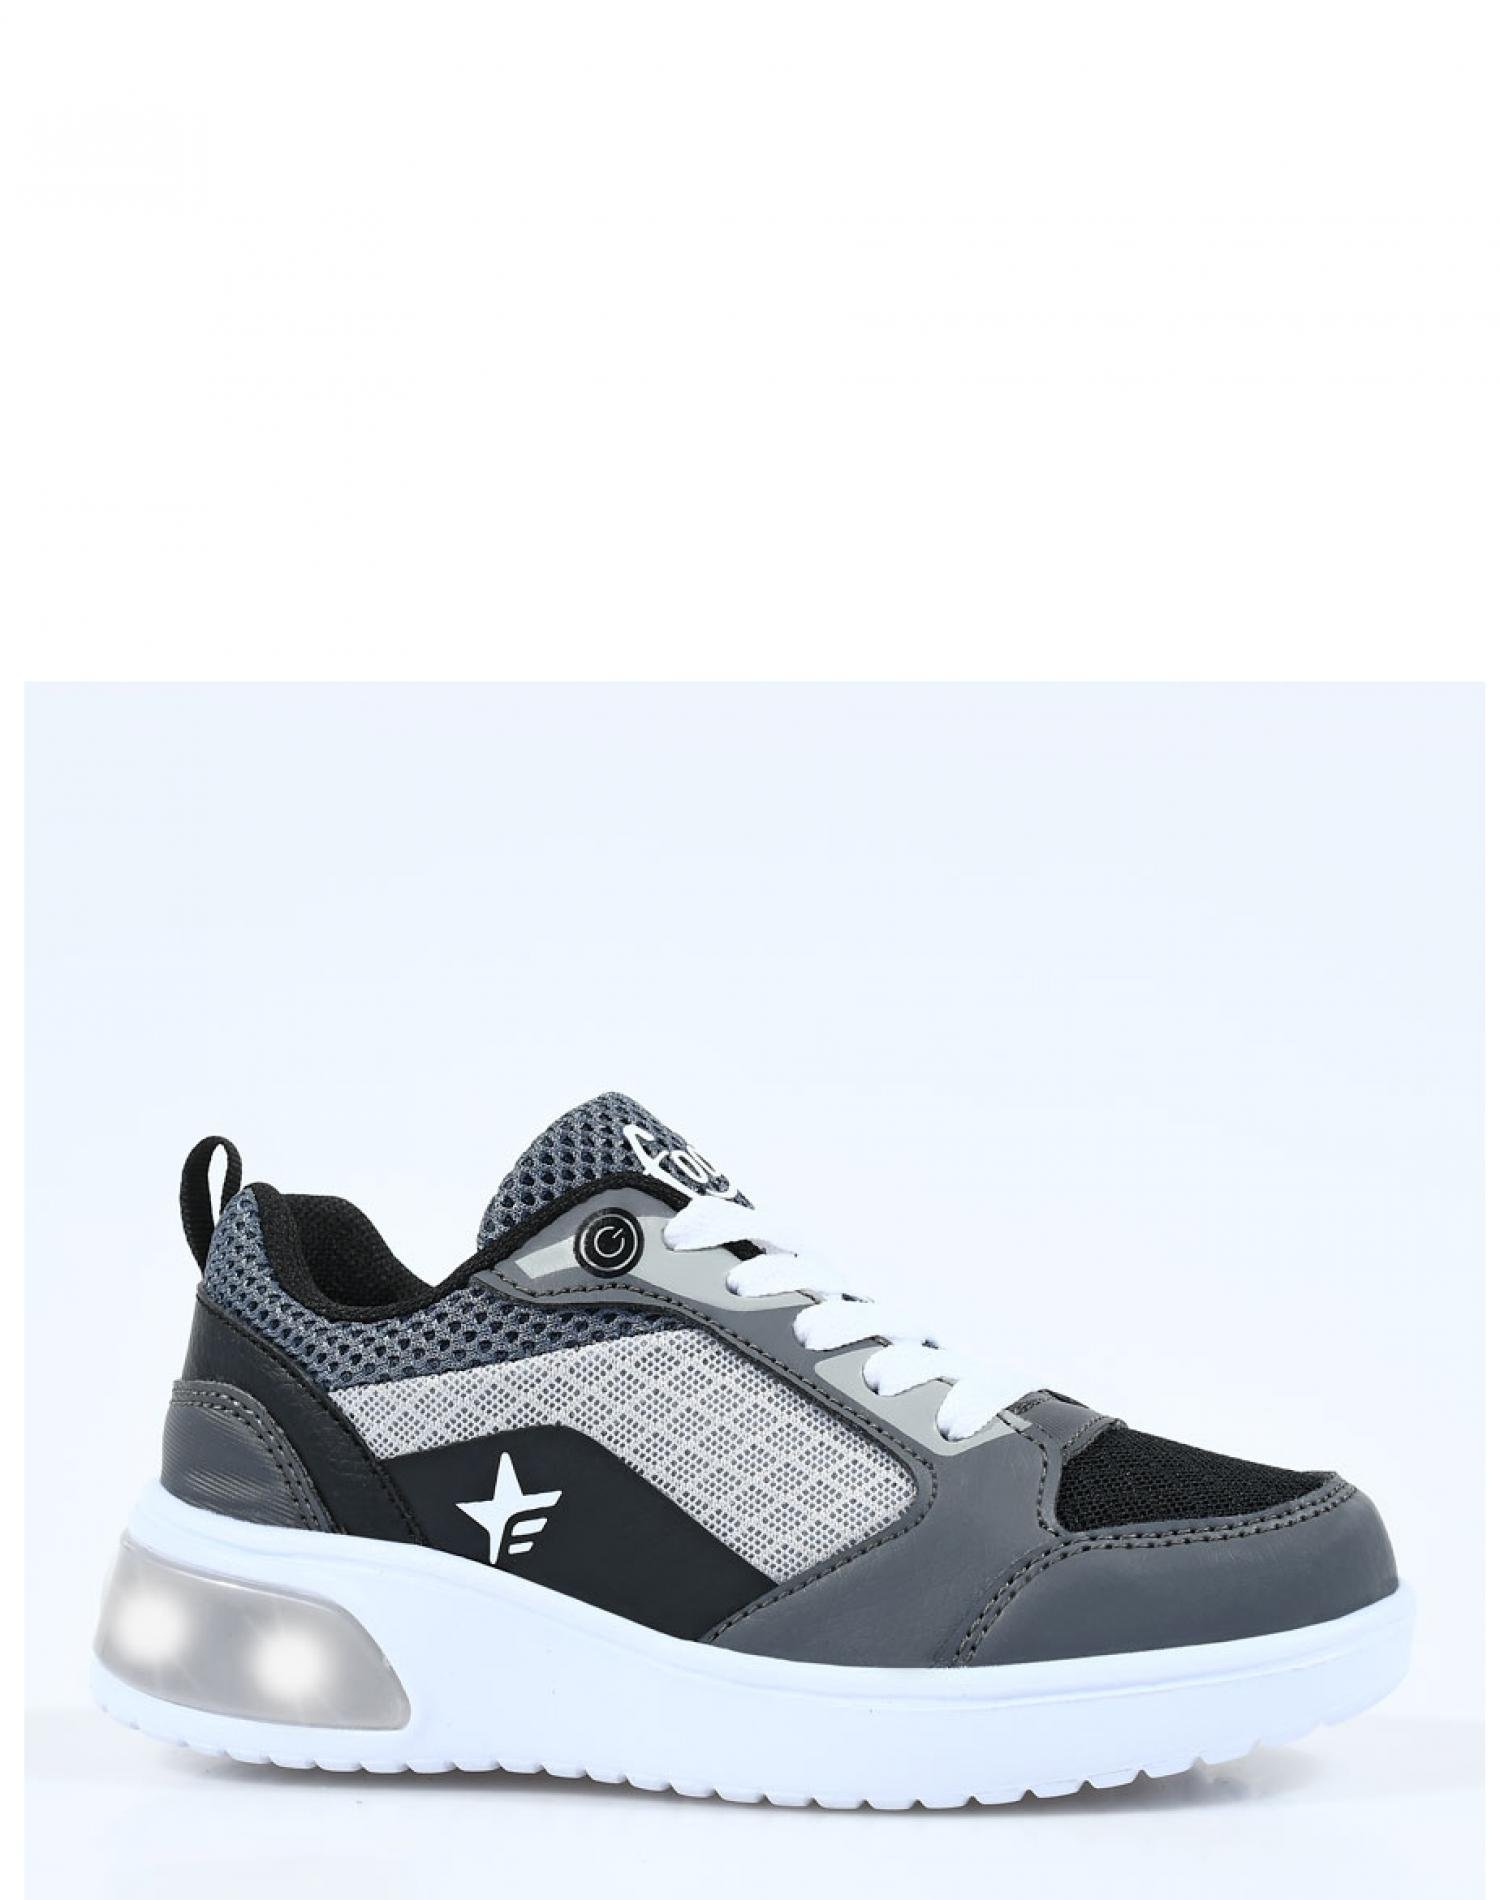 Zapatilla Gris Footy Urban Luces Funny Store